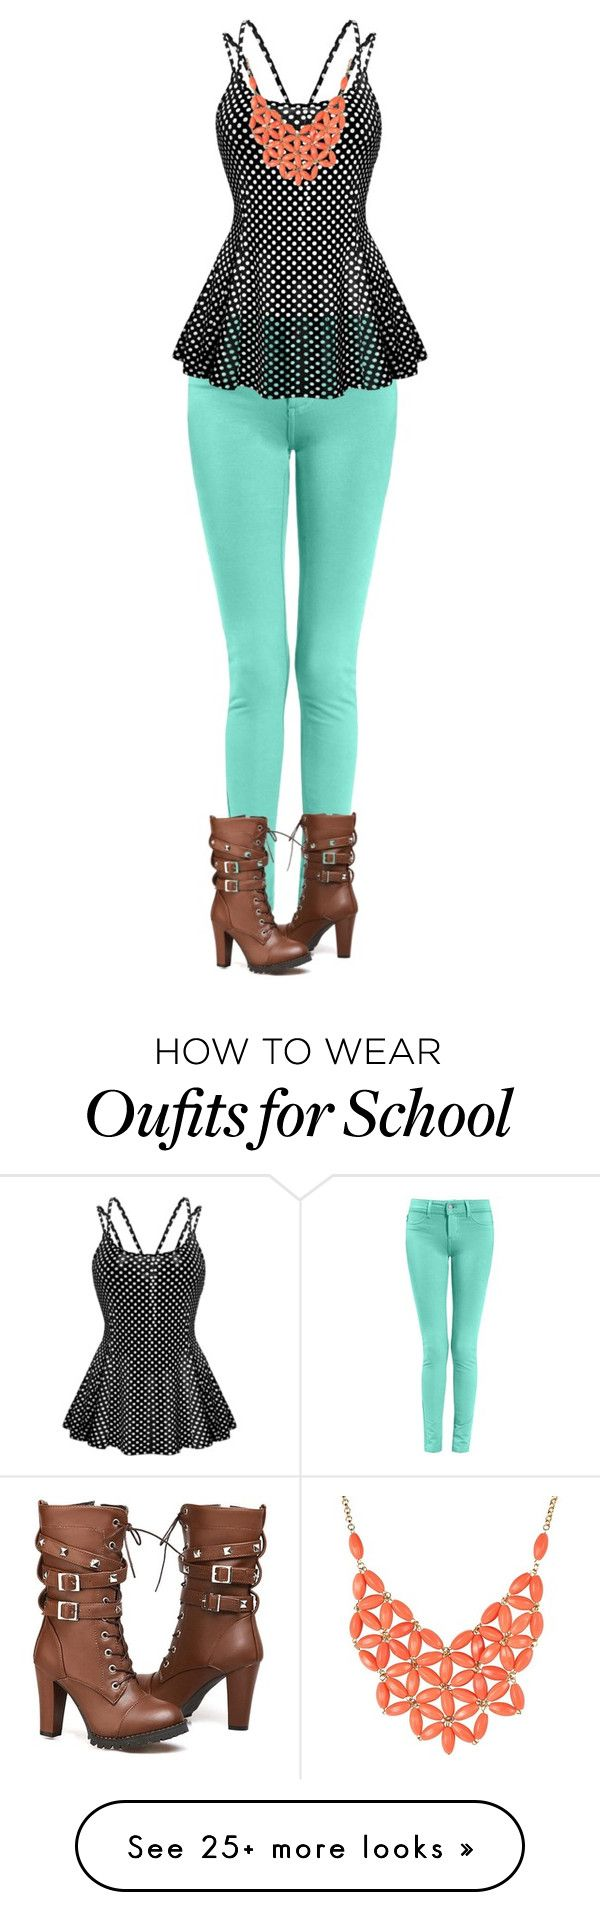 """Casual school outfit"" by jociebean on Polyvore"